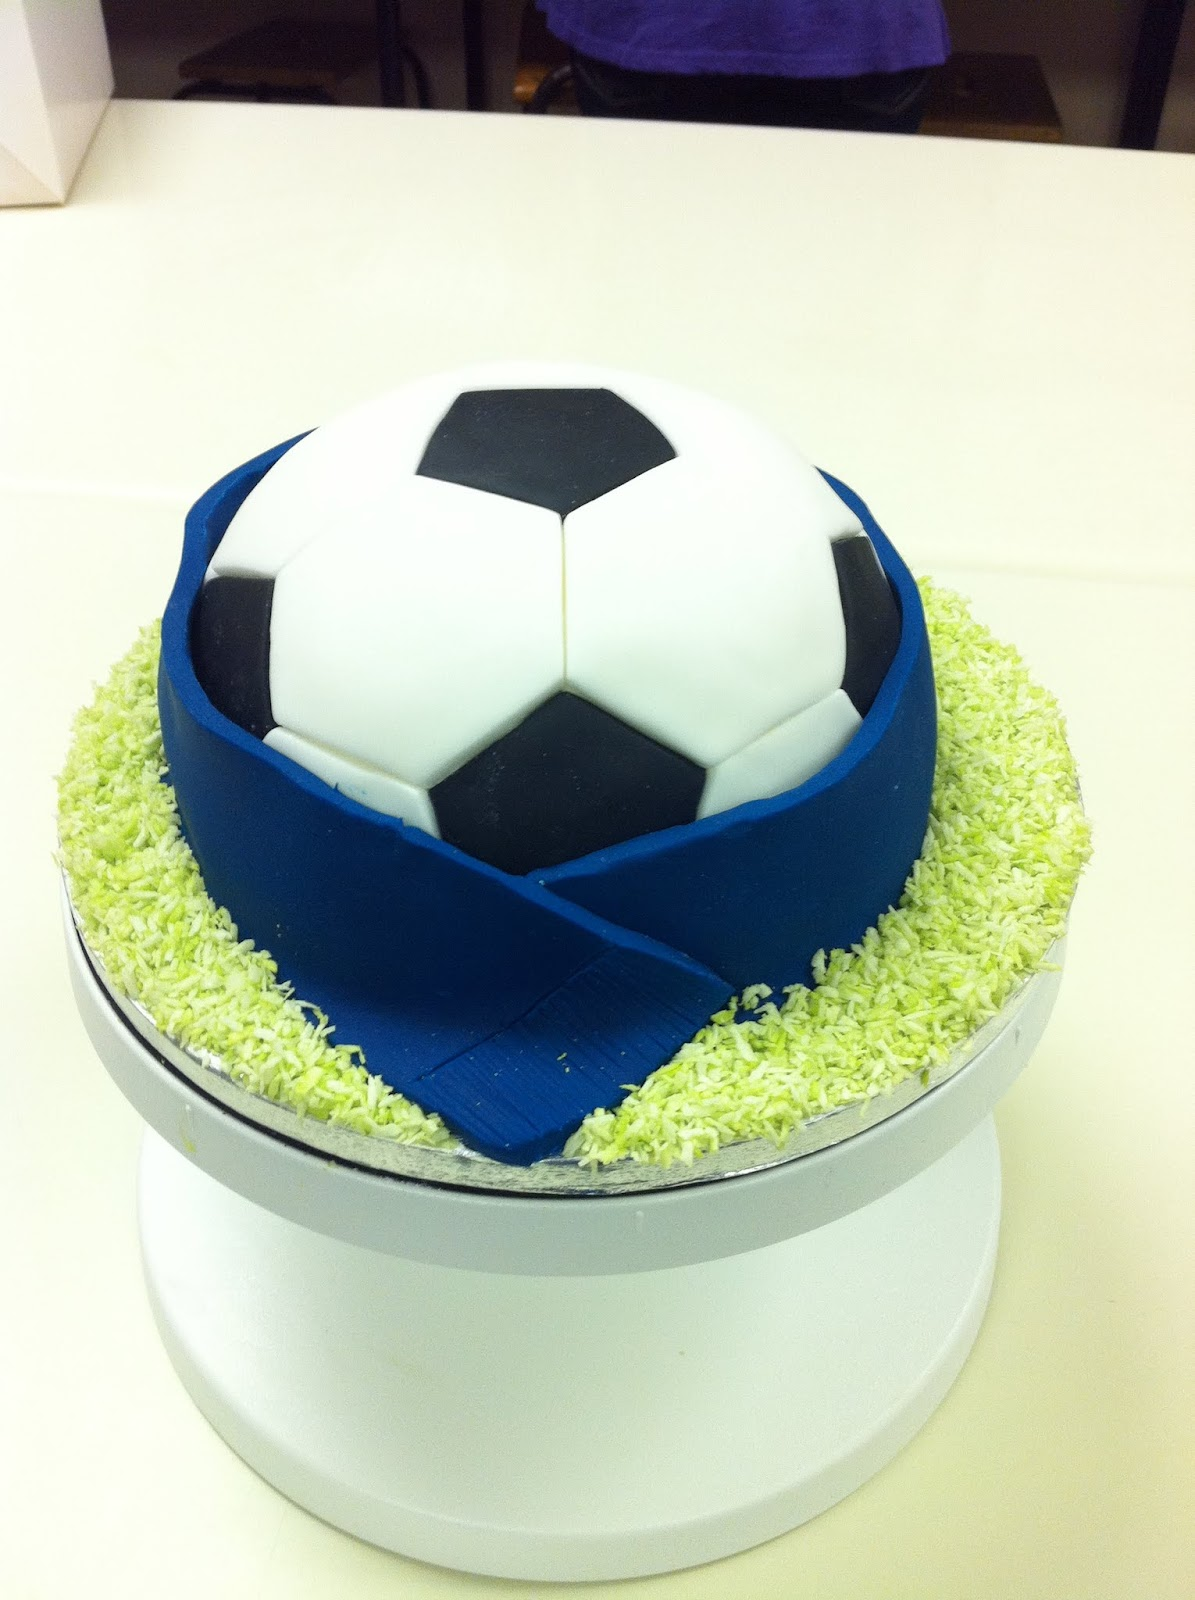 How To Make Coconut Grass For Football Cake